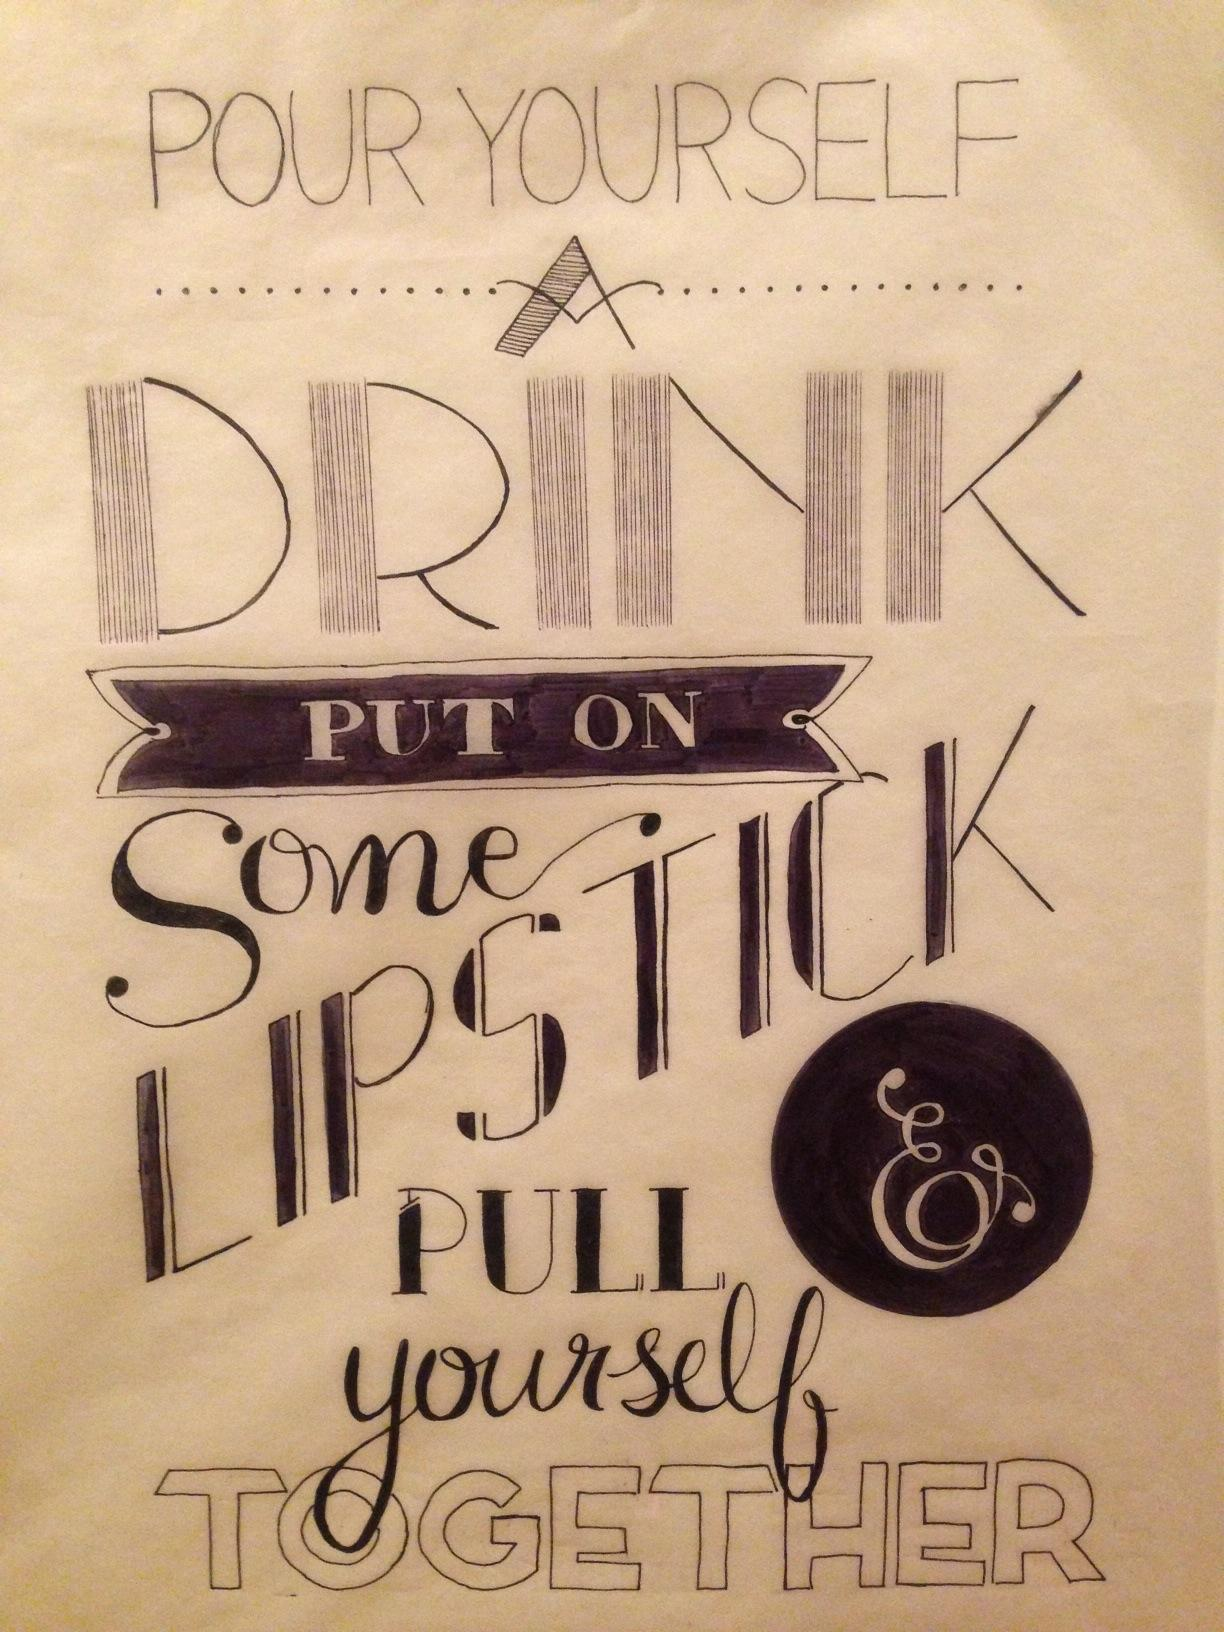 pour yourself a drink.  - image 4 - student project